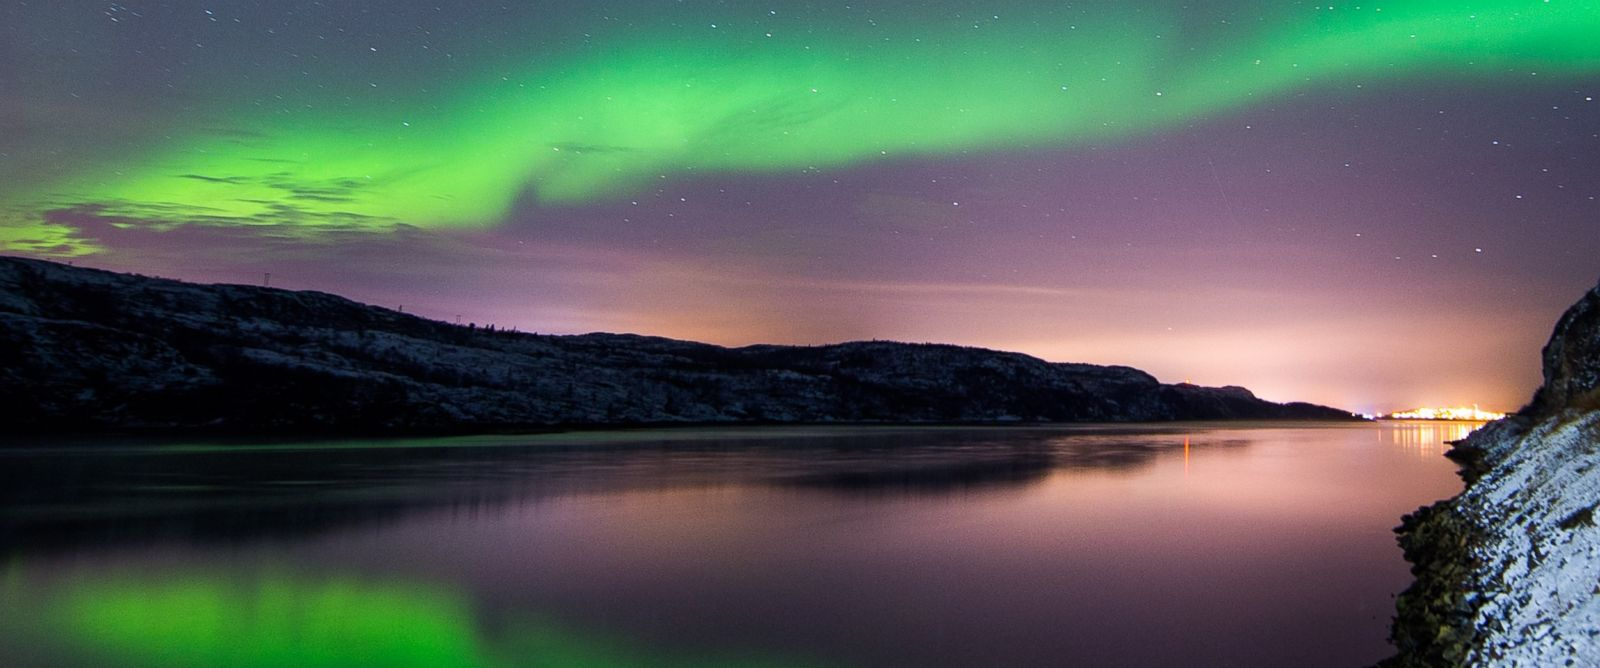 PHOTO:In this file photo, the Aurora Borealis illuminate the night sky, Nov. 12, 2015, near the town of Kirkenes in northern Norway.